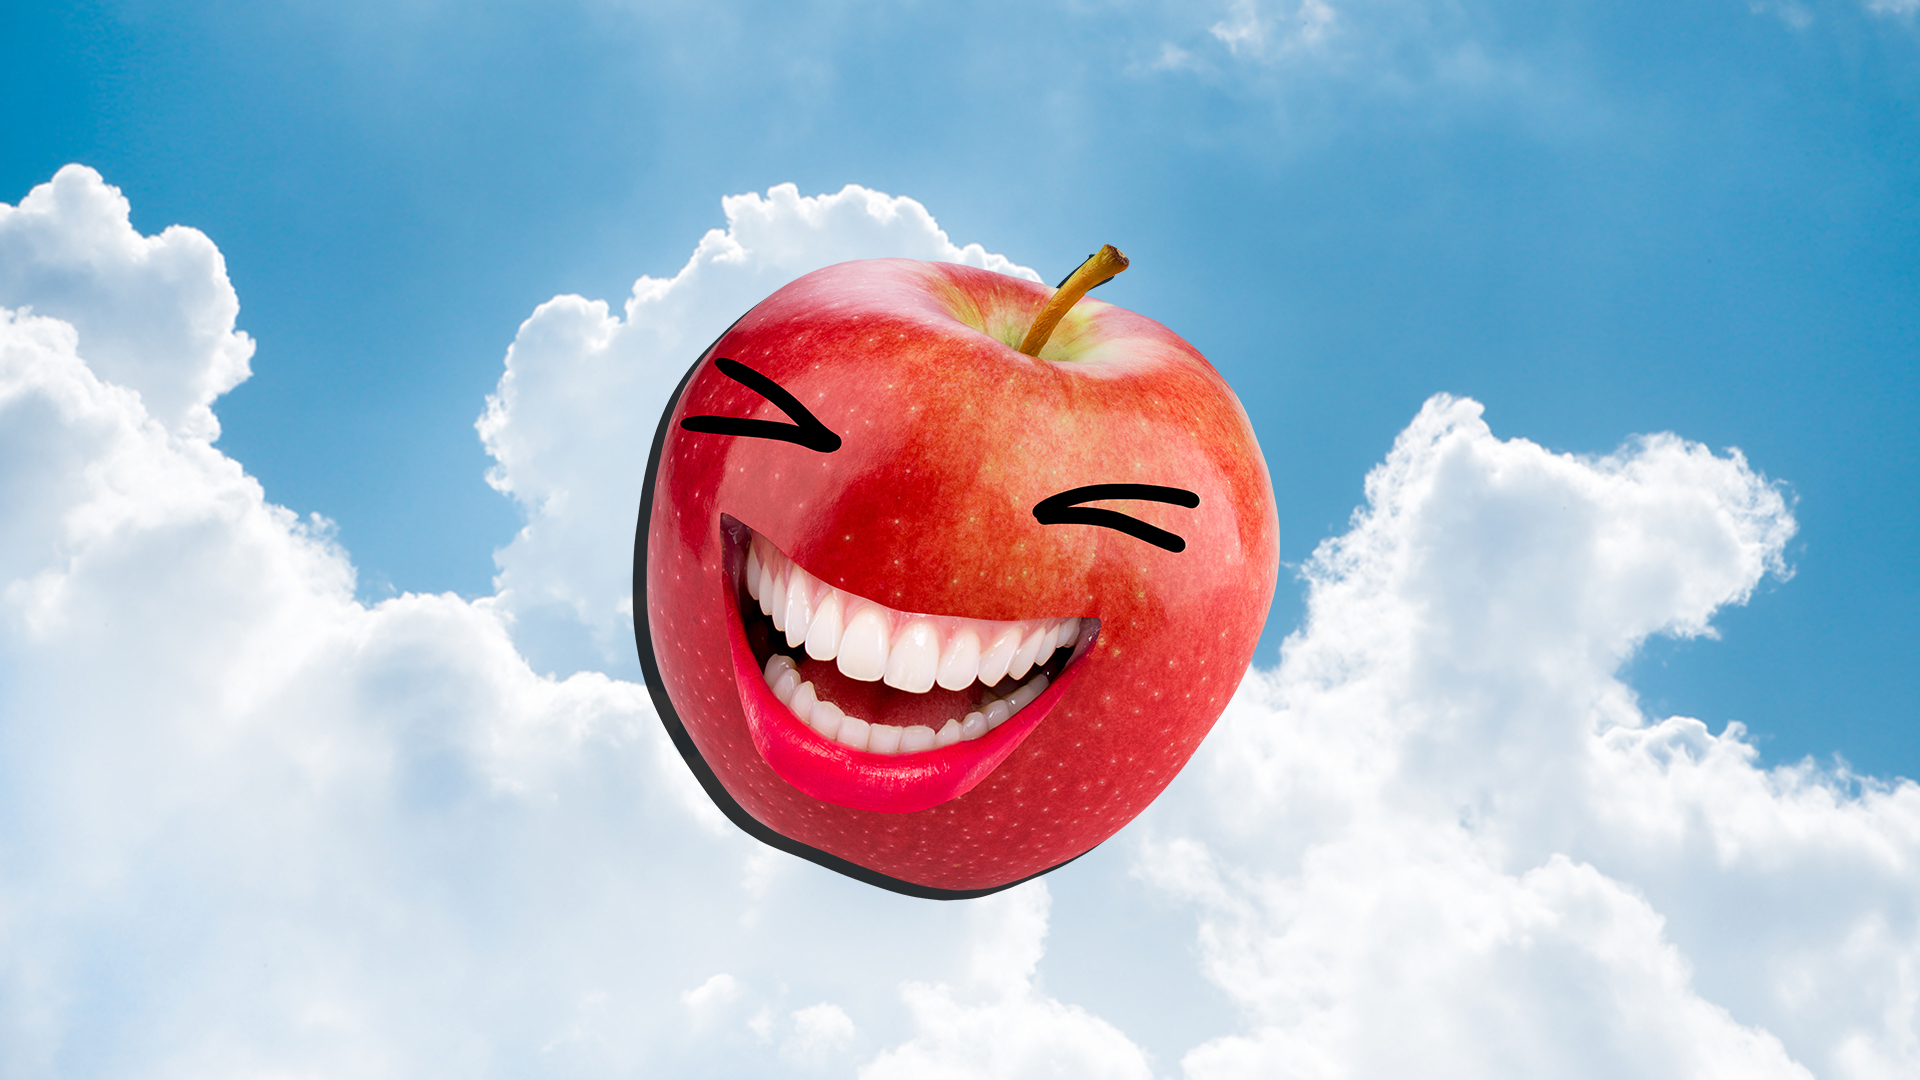 A laughing red apple in front of a cloudy and blue sky background